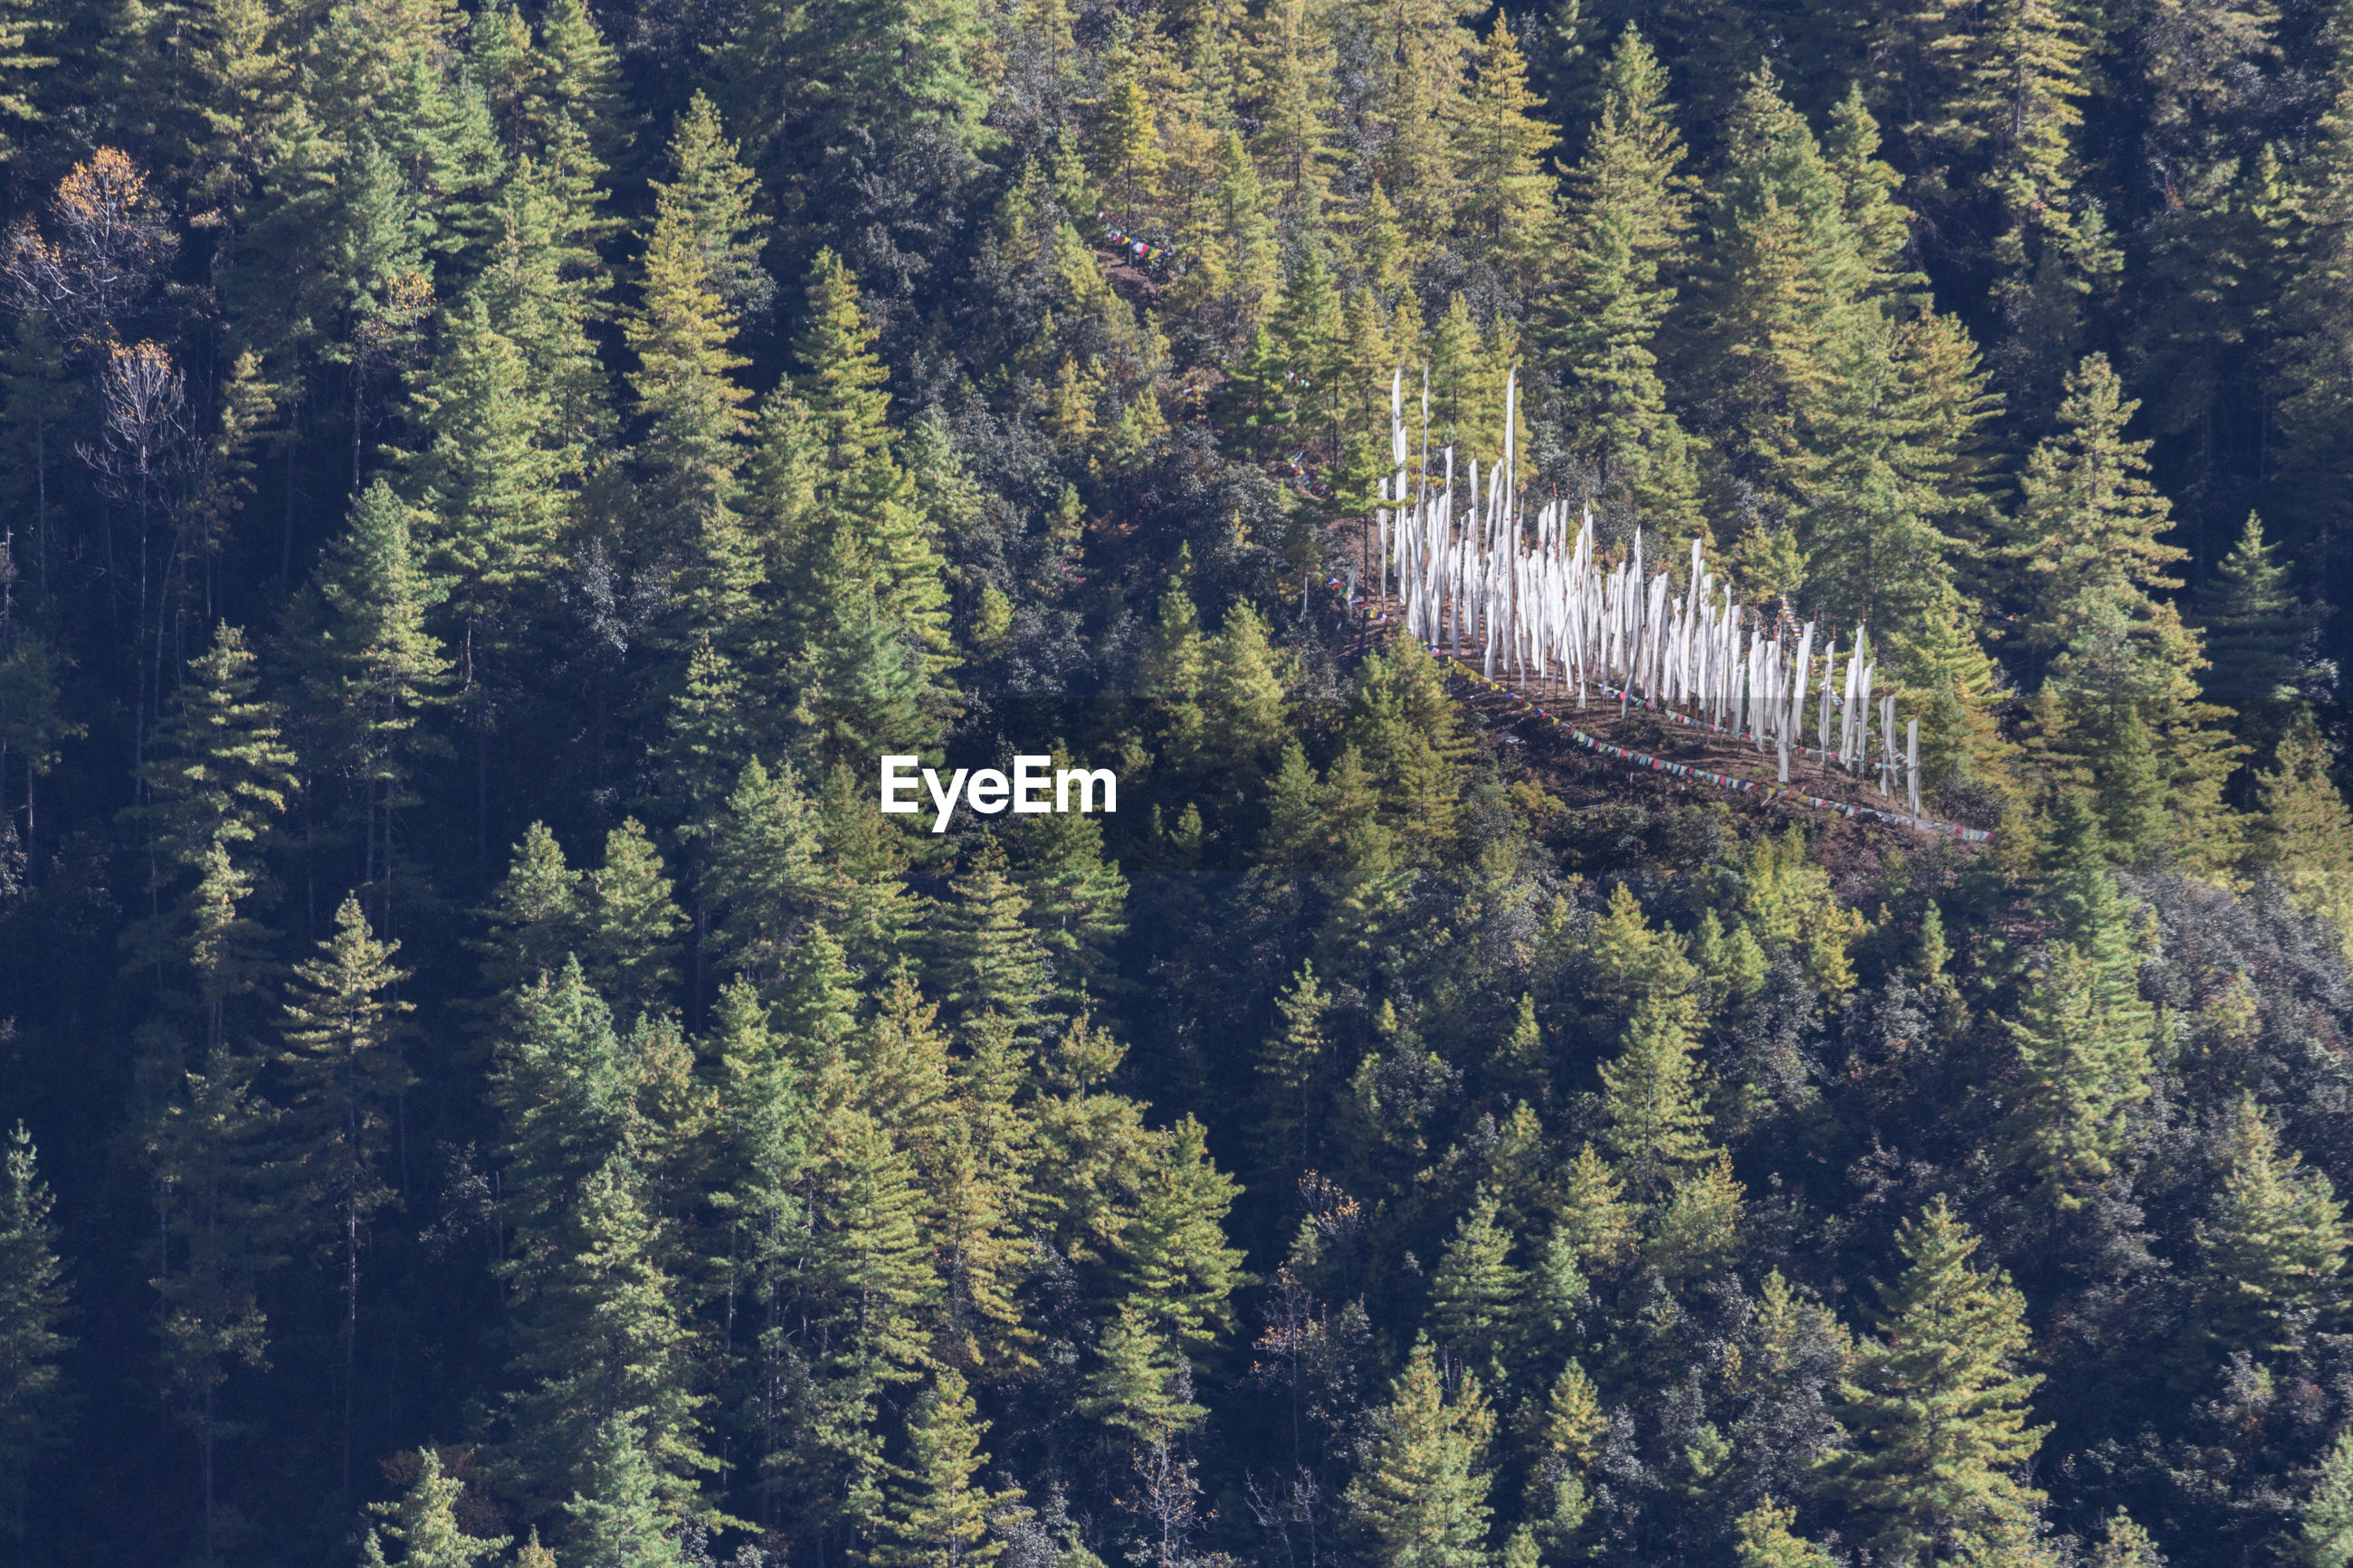 HIGH ANGLE VIEW OF PINE TREES AGAINST MOUNTAIN